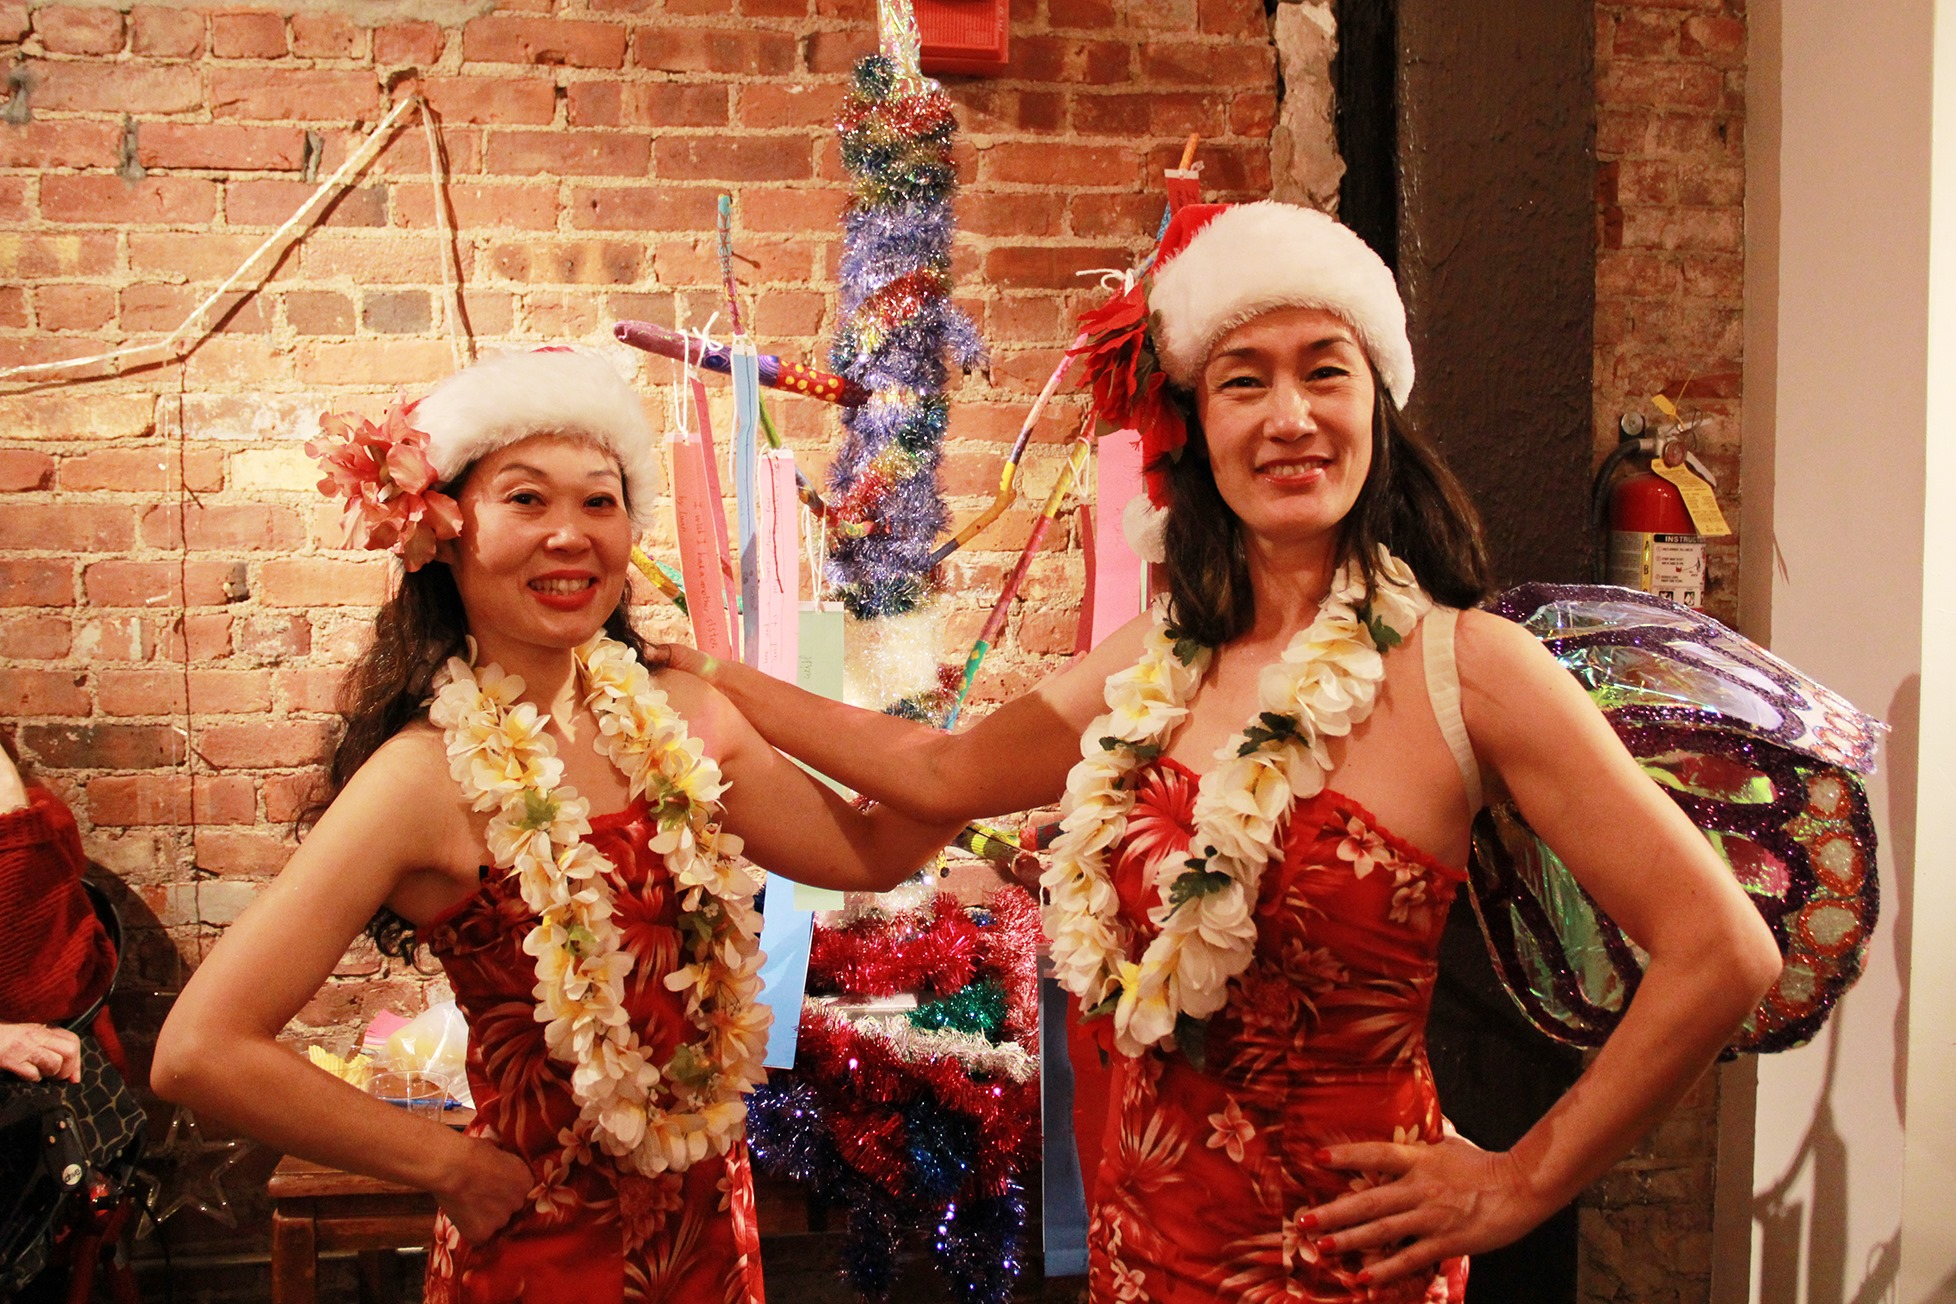 two hula dancers dressed in red embrace in front of a red brick wall they are both wearing santa hats